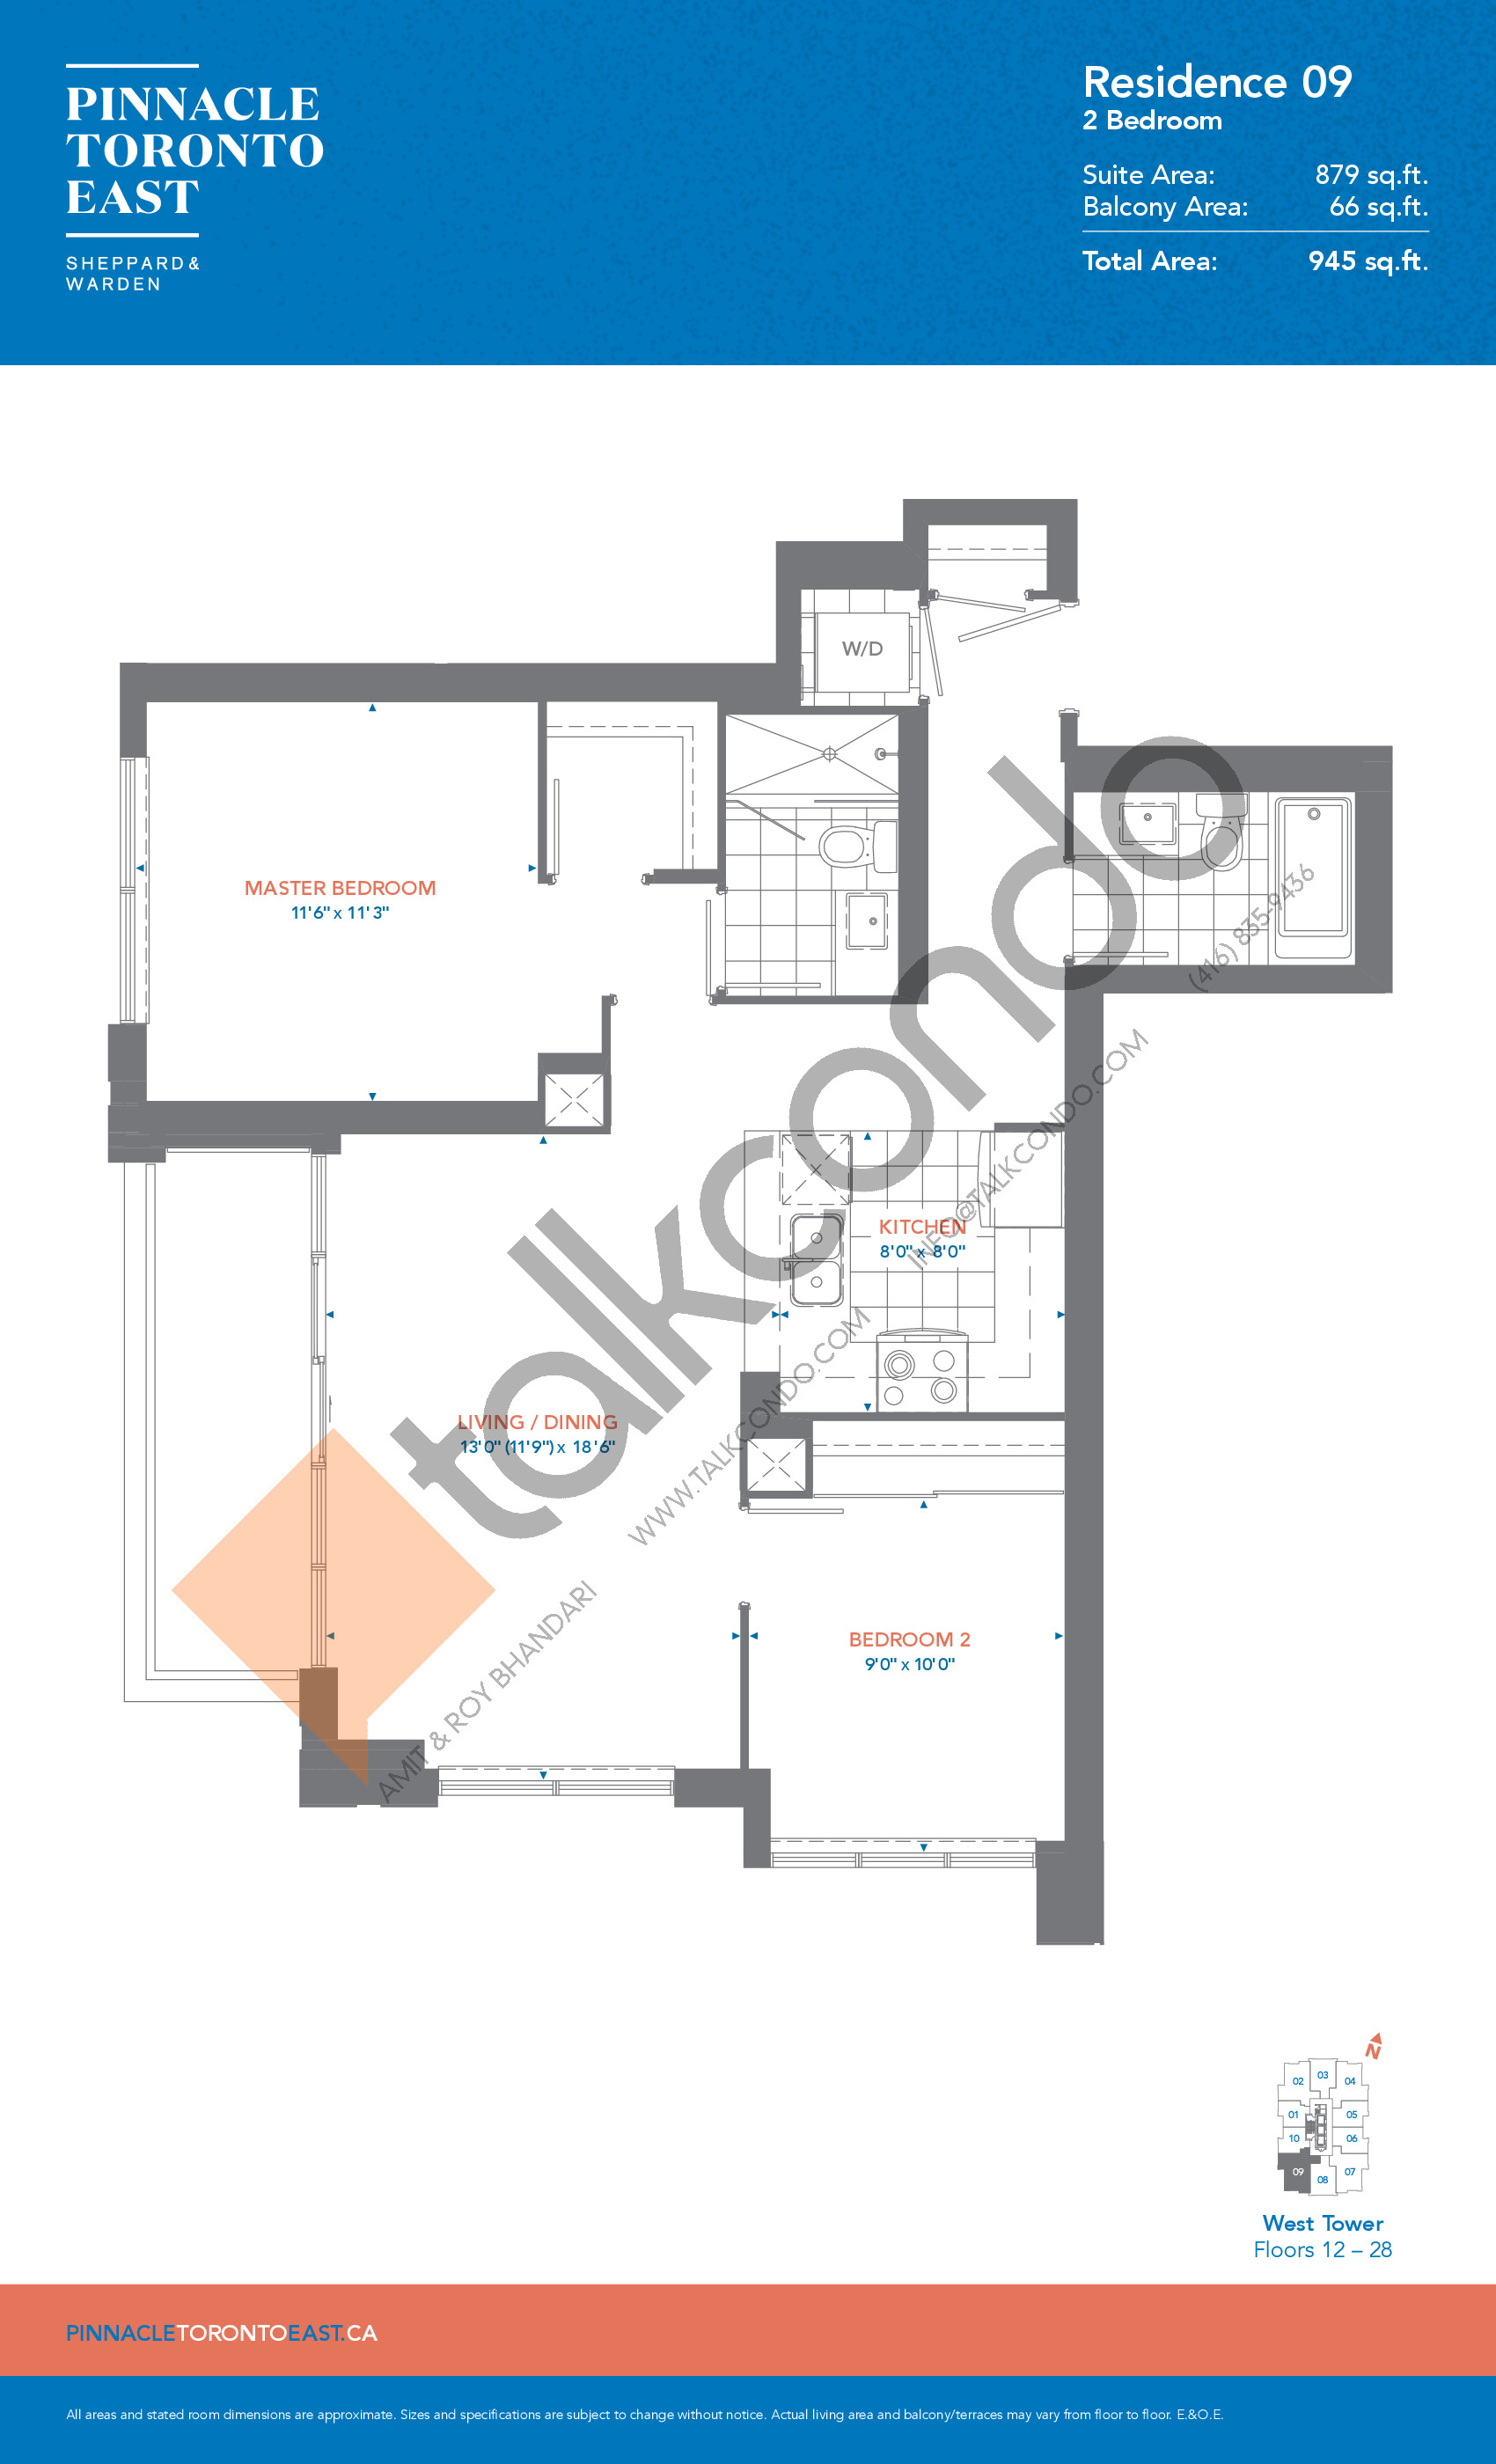 Residence 09 - West Tower Floor Plan at Pinnacle Toronto East Condos - 879 sq.ft